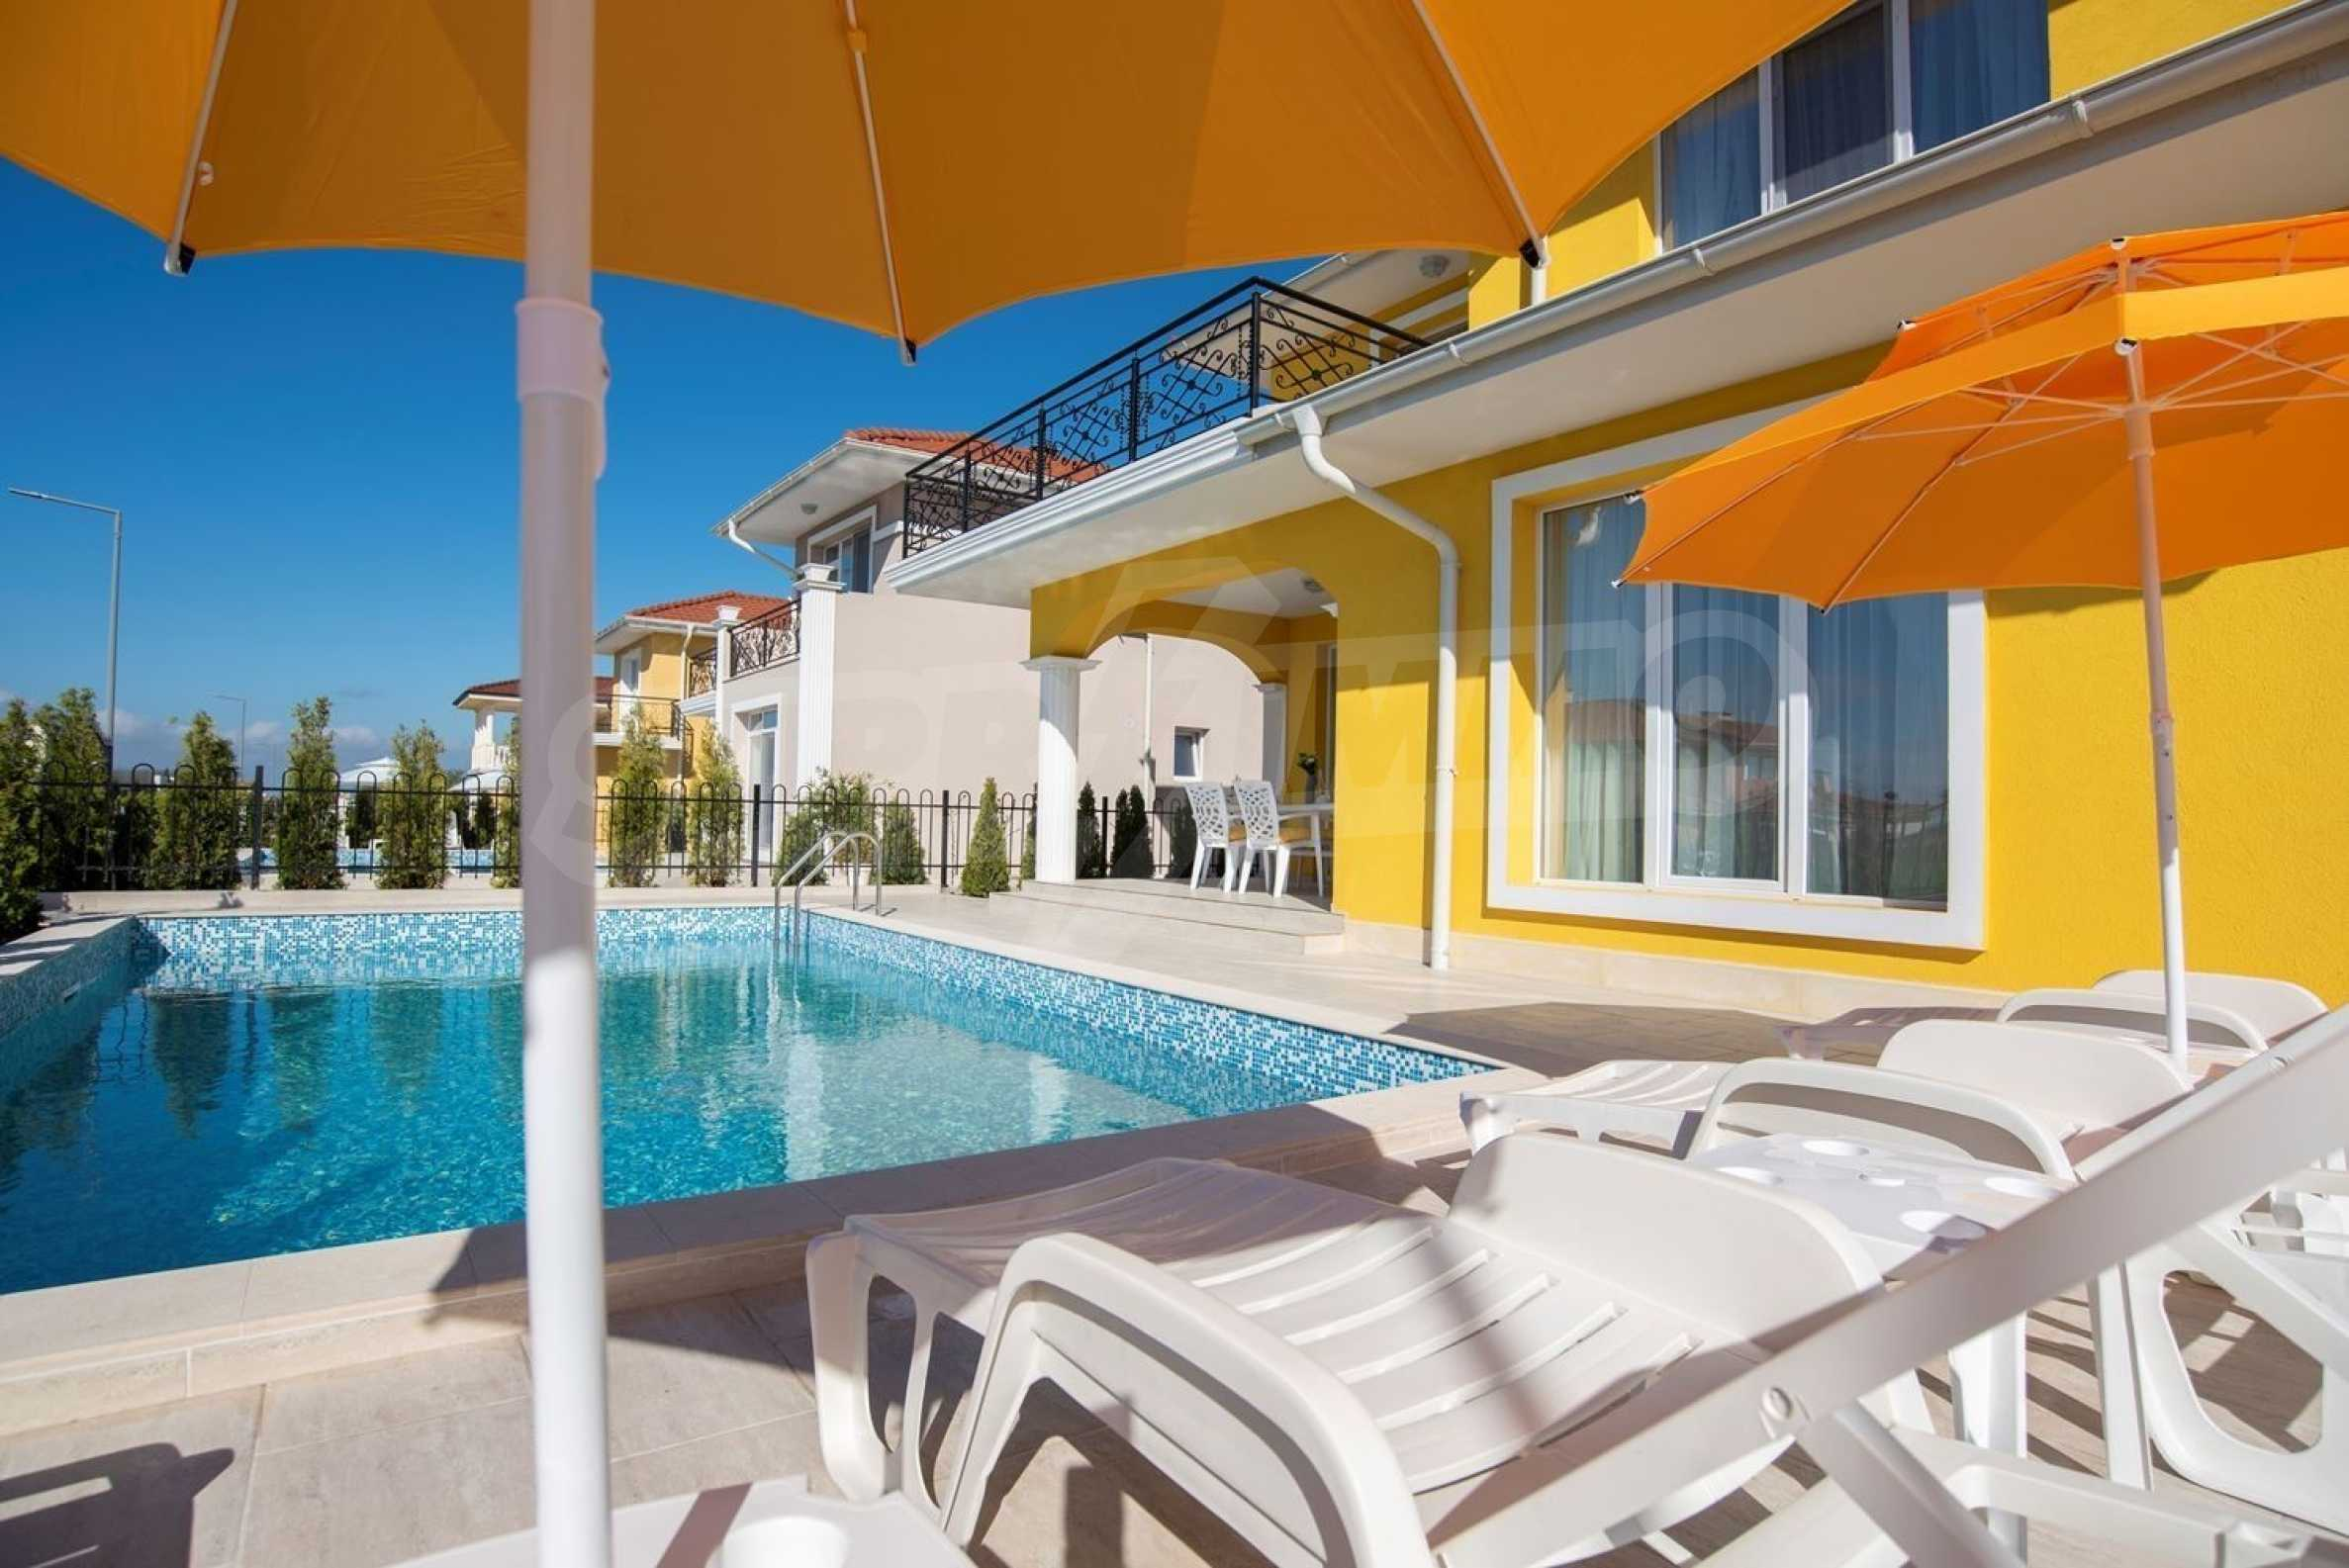 """Villa """"Charming Sun"""" - beautiful garden and pool, sea view and vintage interior 3"""